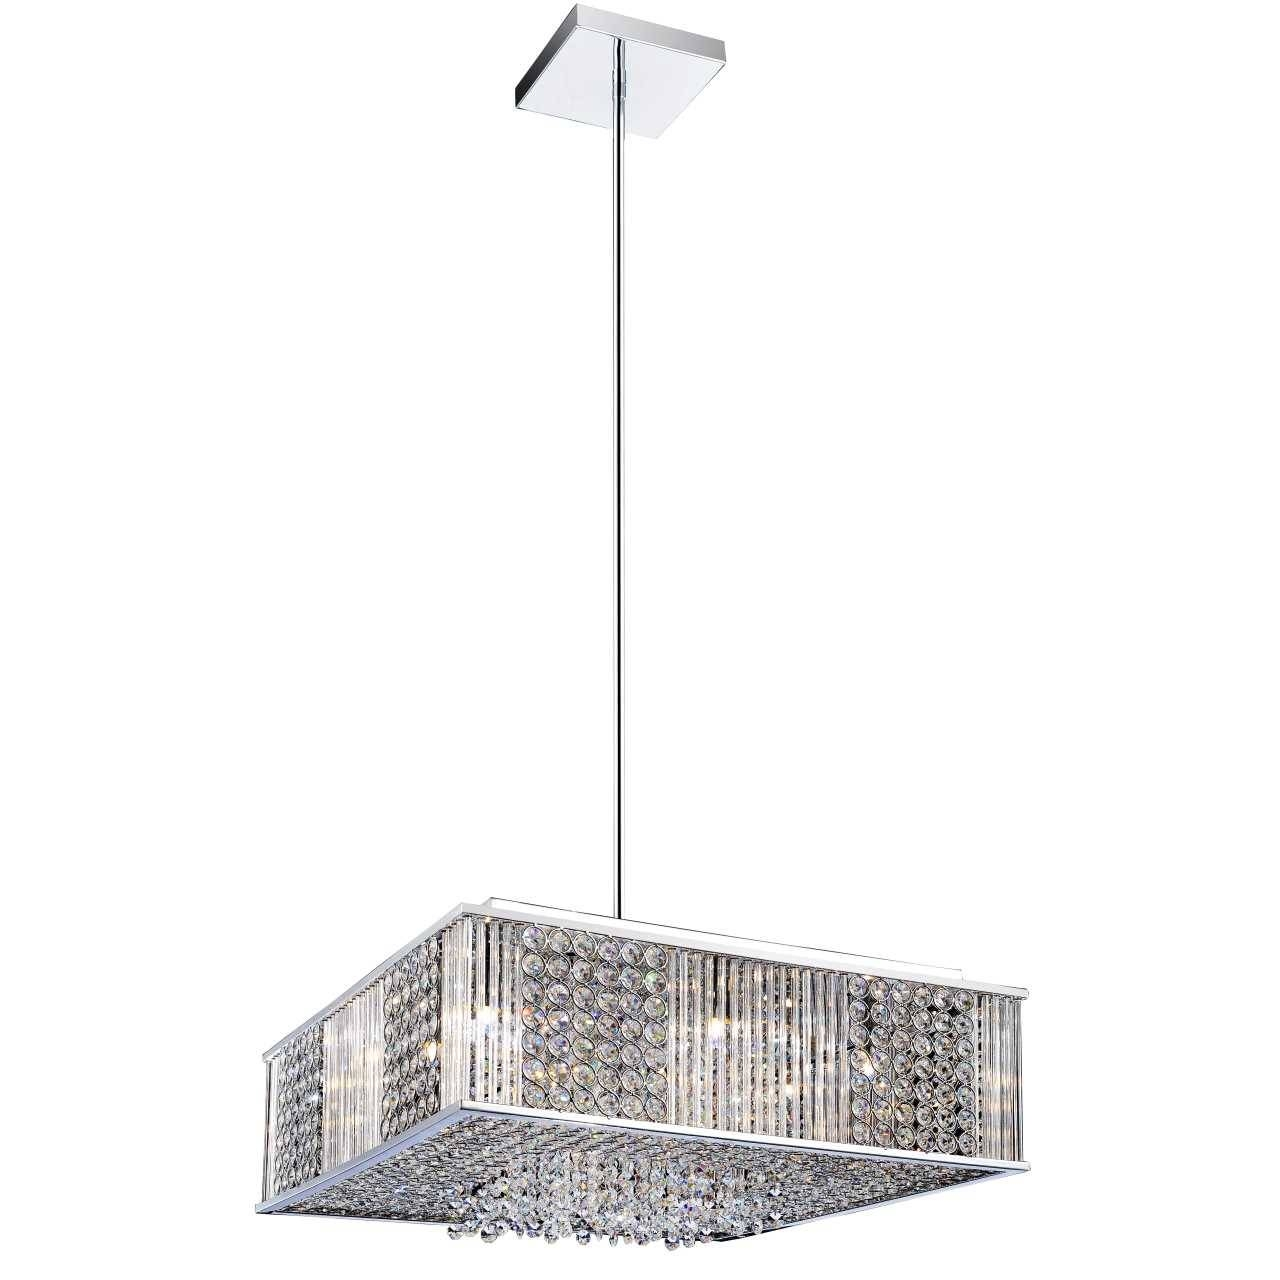 """Brizzo Lighting Stores. 16"""" Cristallo Modern Crystal Square throughout Square Pendant Light Fixtures (Image 3 of 15)"""